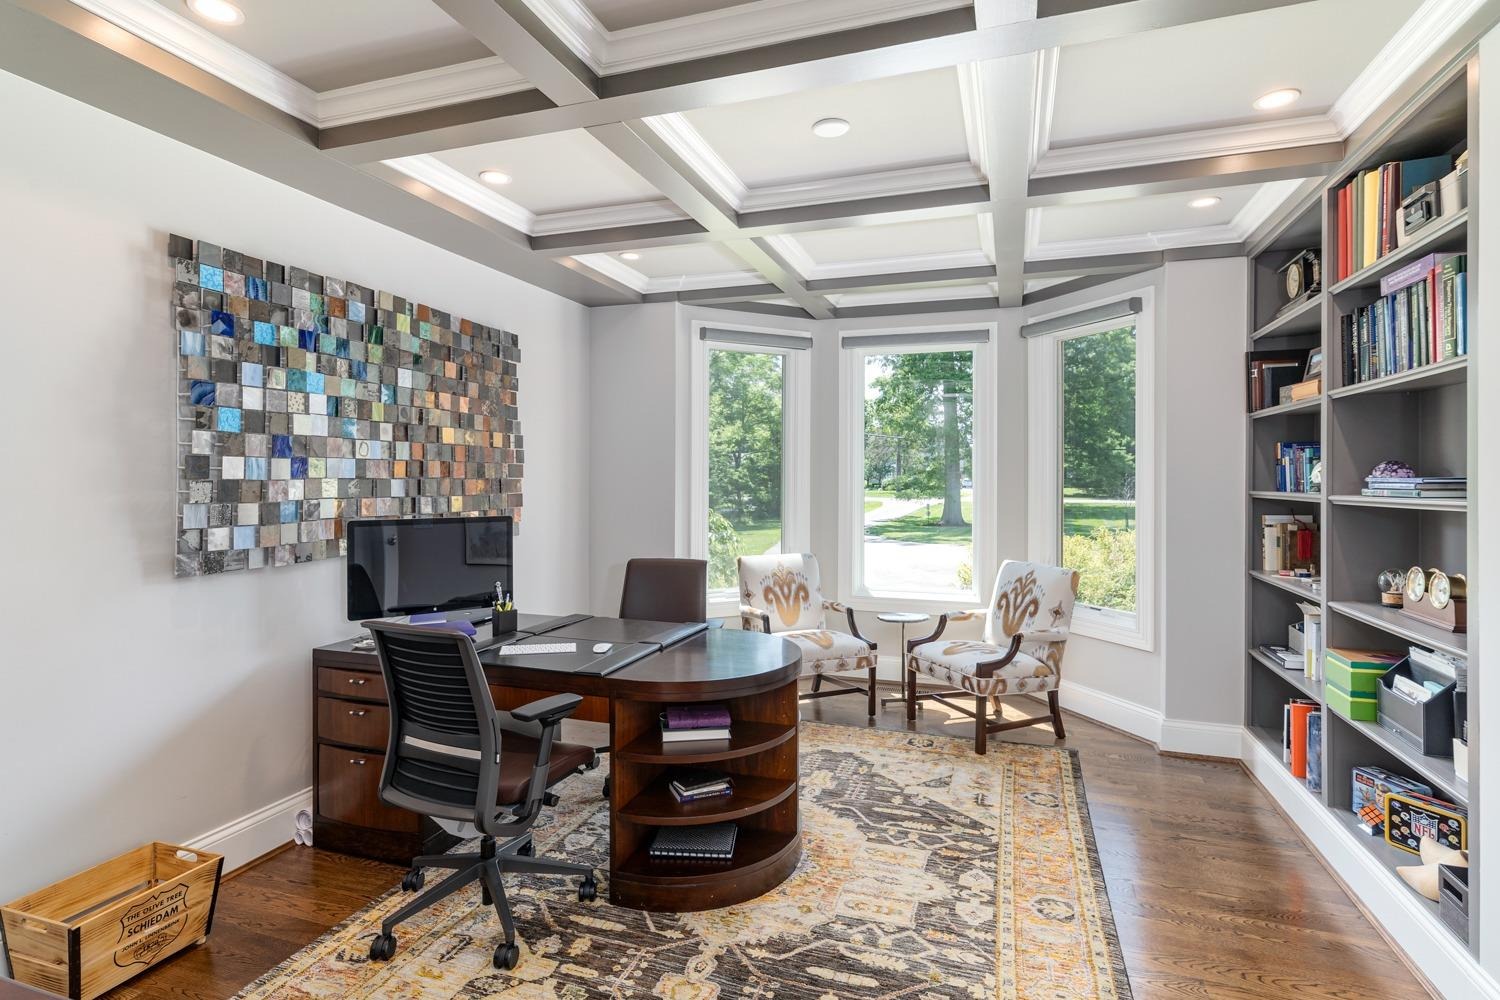 Study adjacent to first floor master with coffered ceiling, hardwood floors, bay window, built-in bookshelves, and motorized Hunter Douglas blinds.